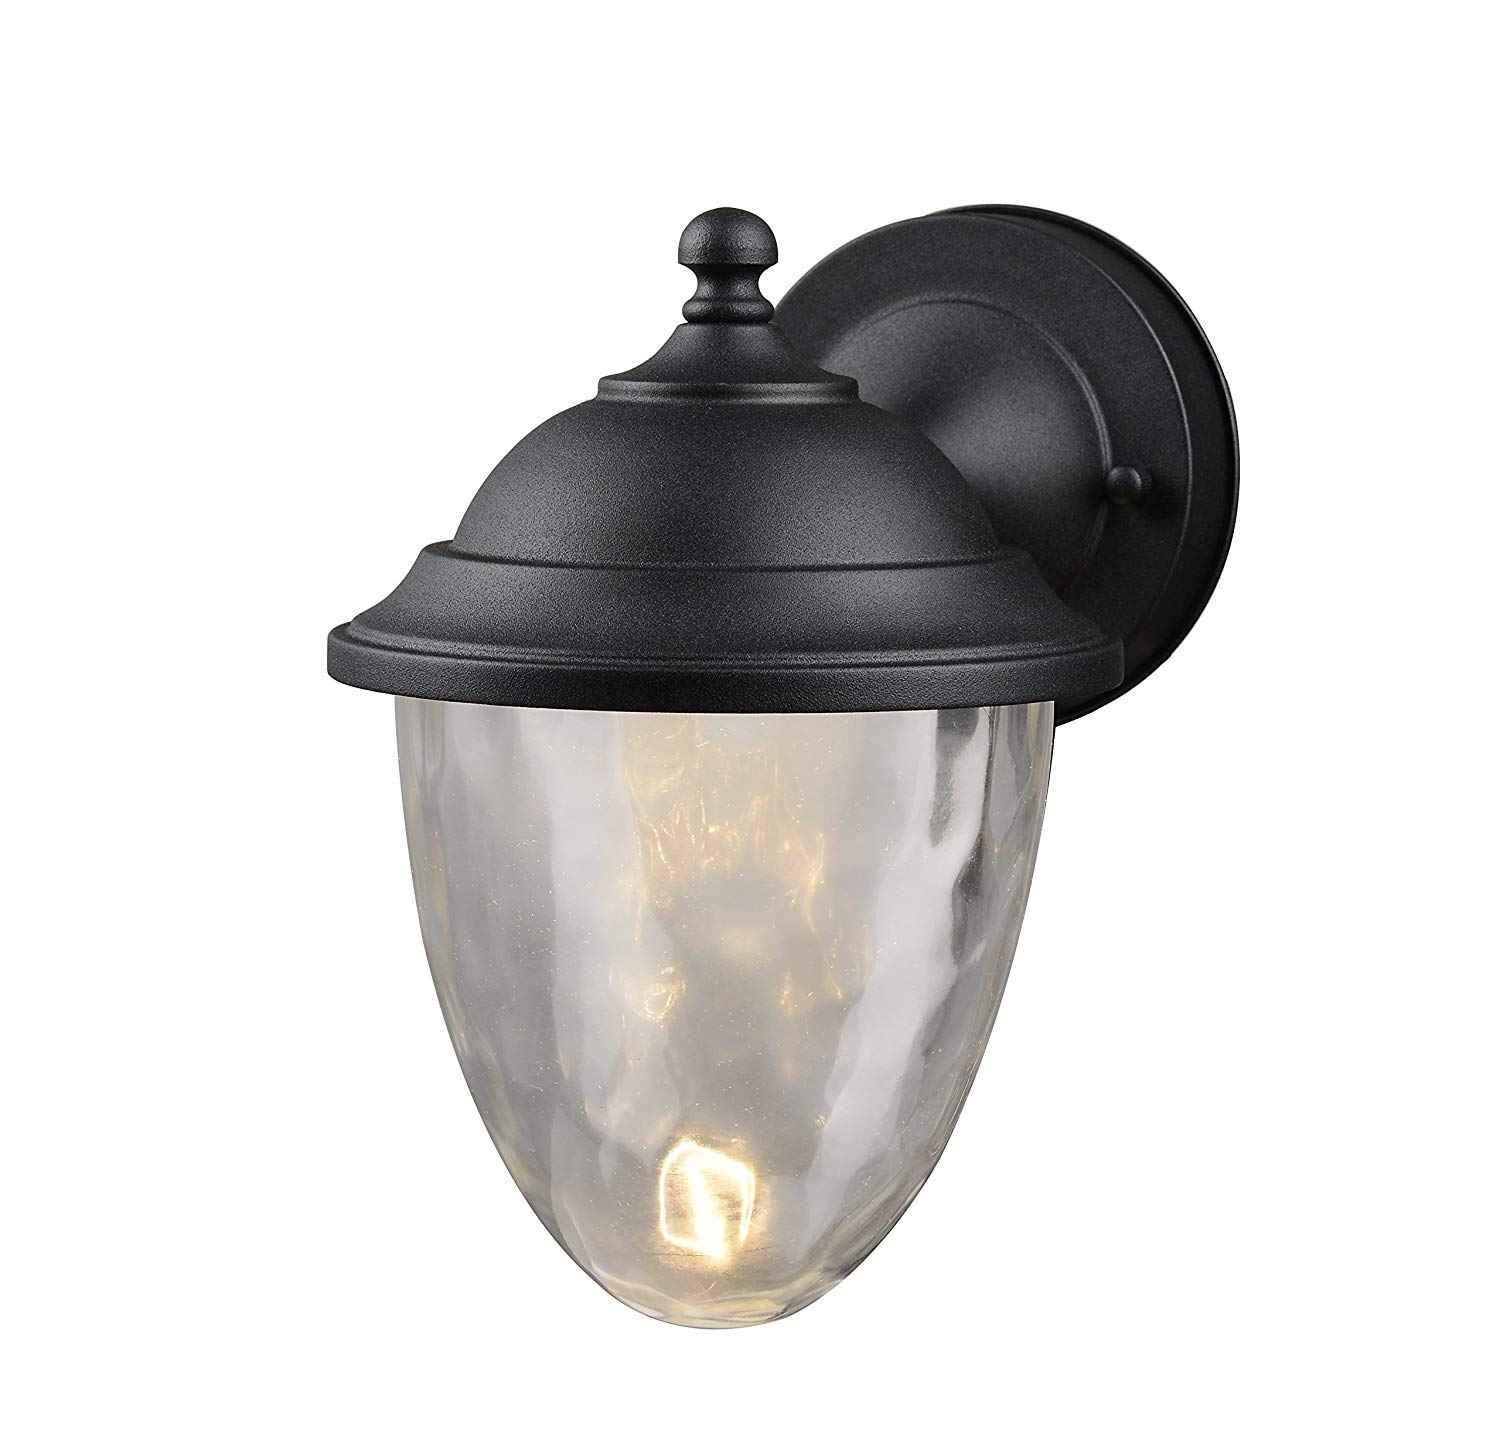 Hardware House LLC 21-3592 # 1-Light Medium Led Lantern Black Medium Size Lantern Wall Fixture with 1-Light Comes with Clear Bubble Water Glass Uses (1) 10W Led Light Bulb-Included